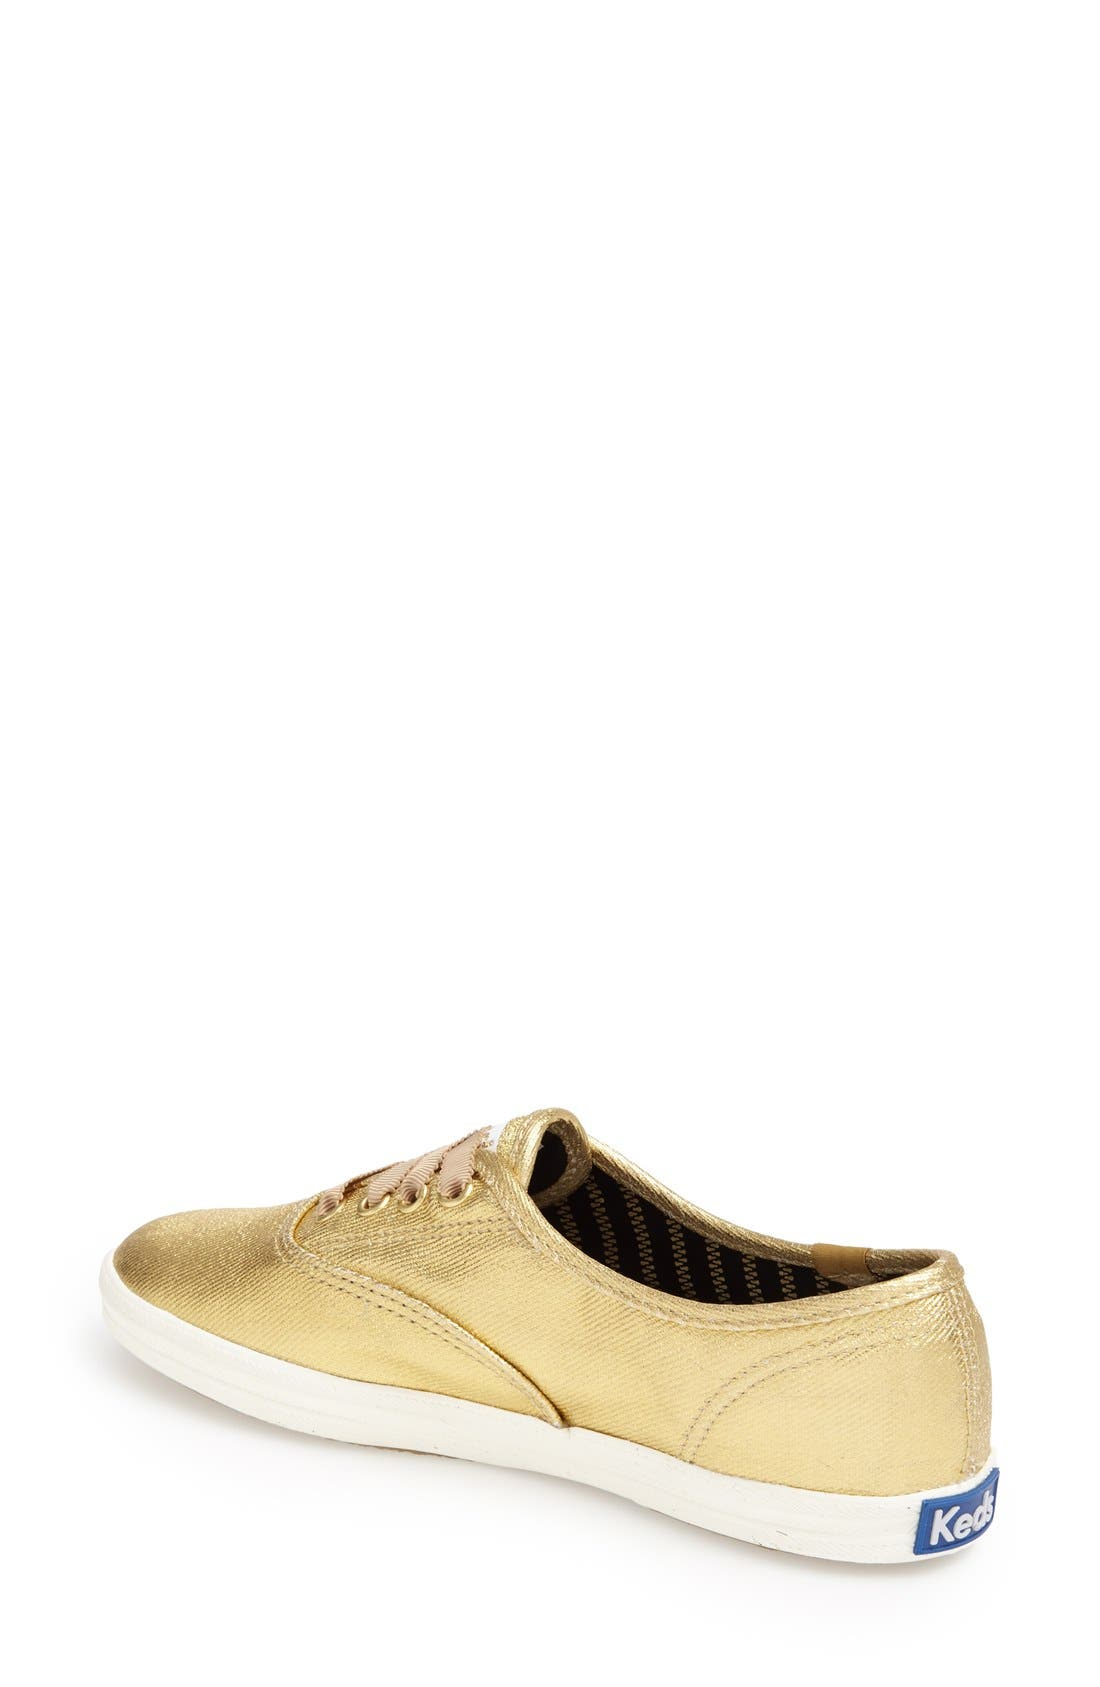 Alternate Image 2  - Keds® 'Champion - Metallic' Sneaker (Women)